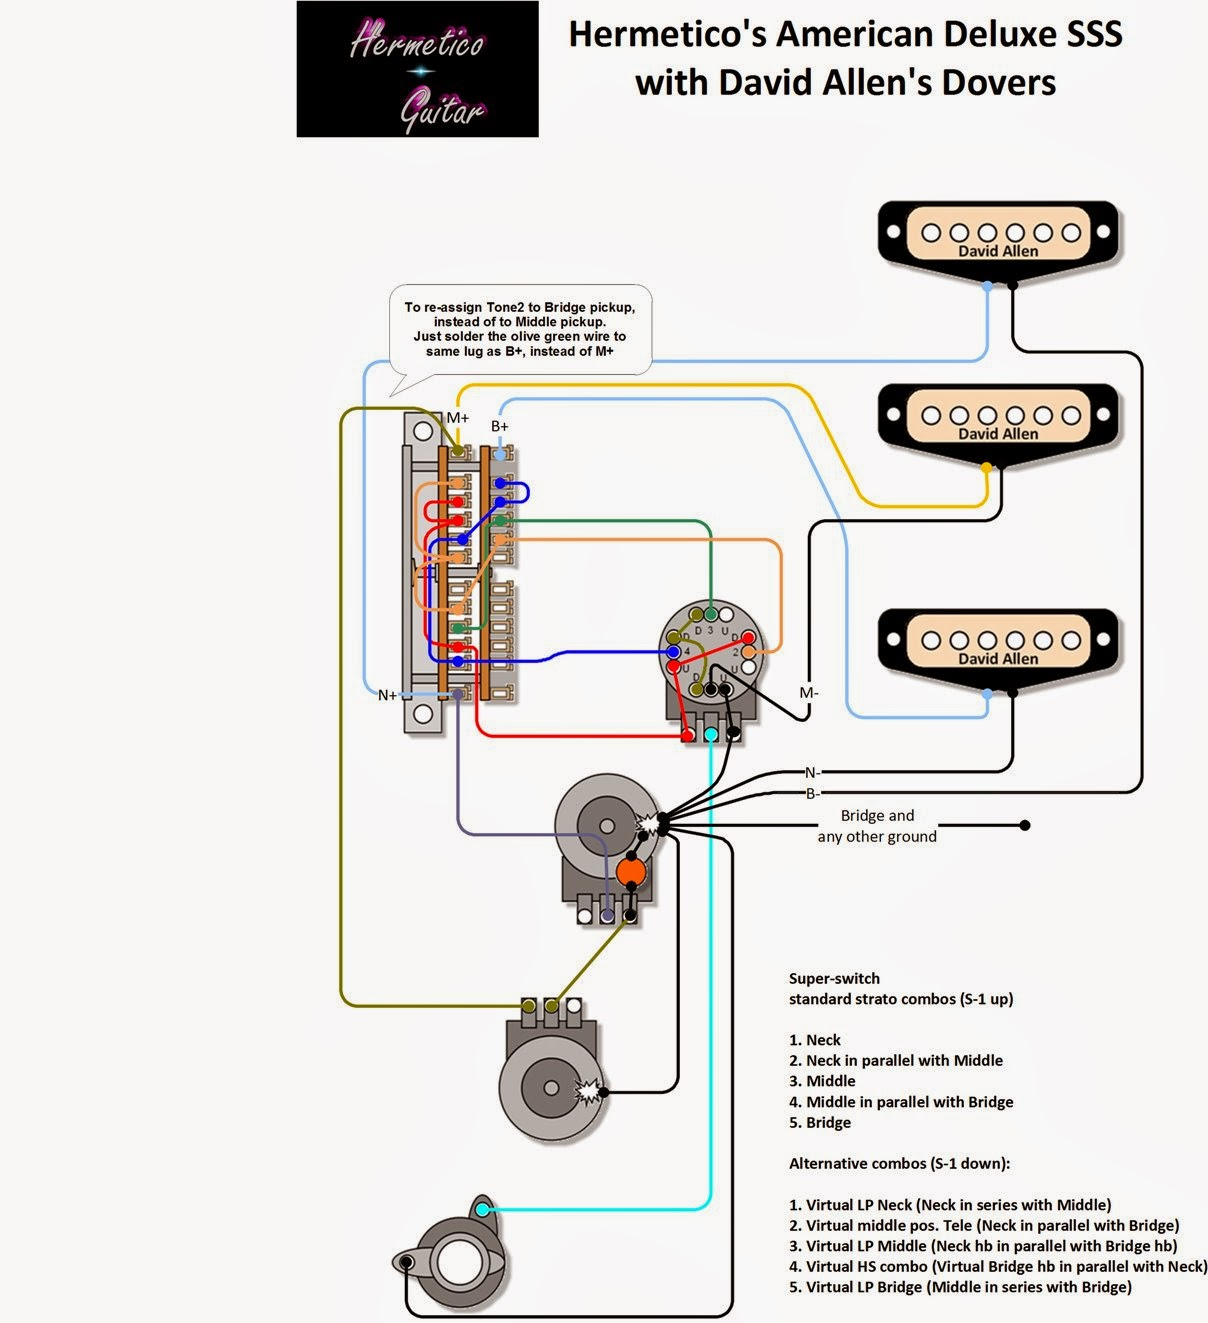 Fender Sss Wiring Diagram | Wiring Liry on